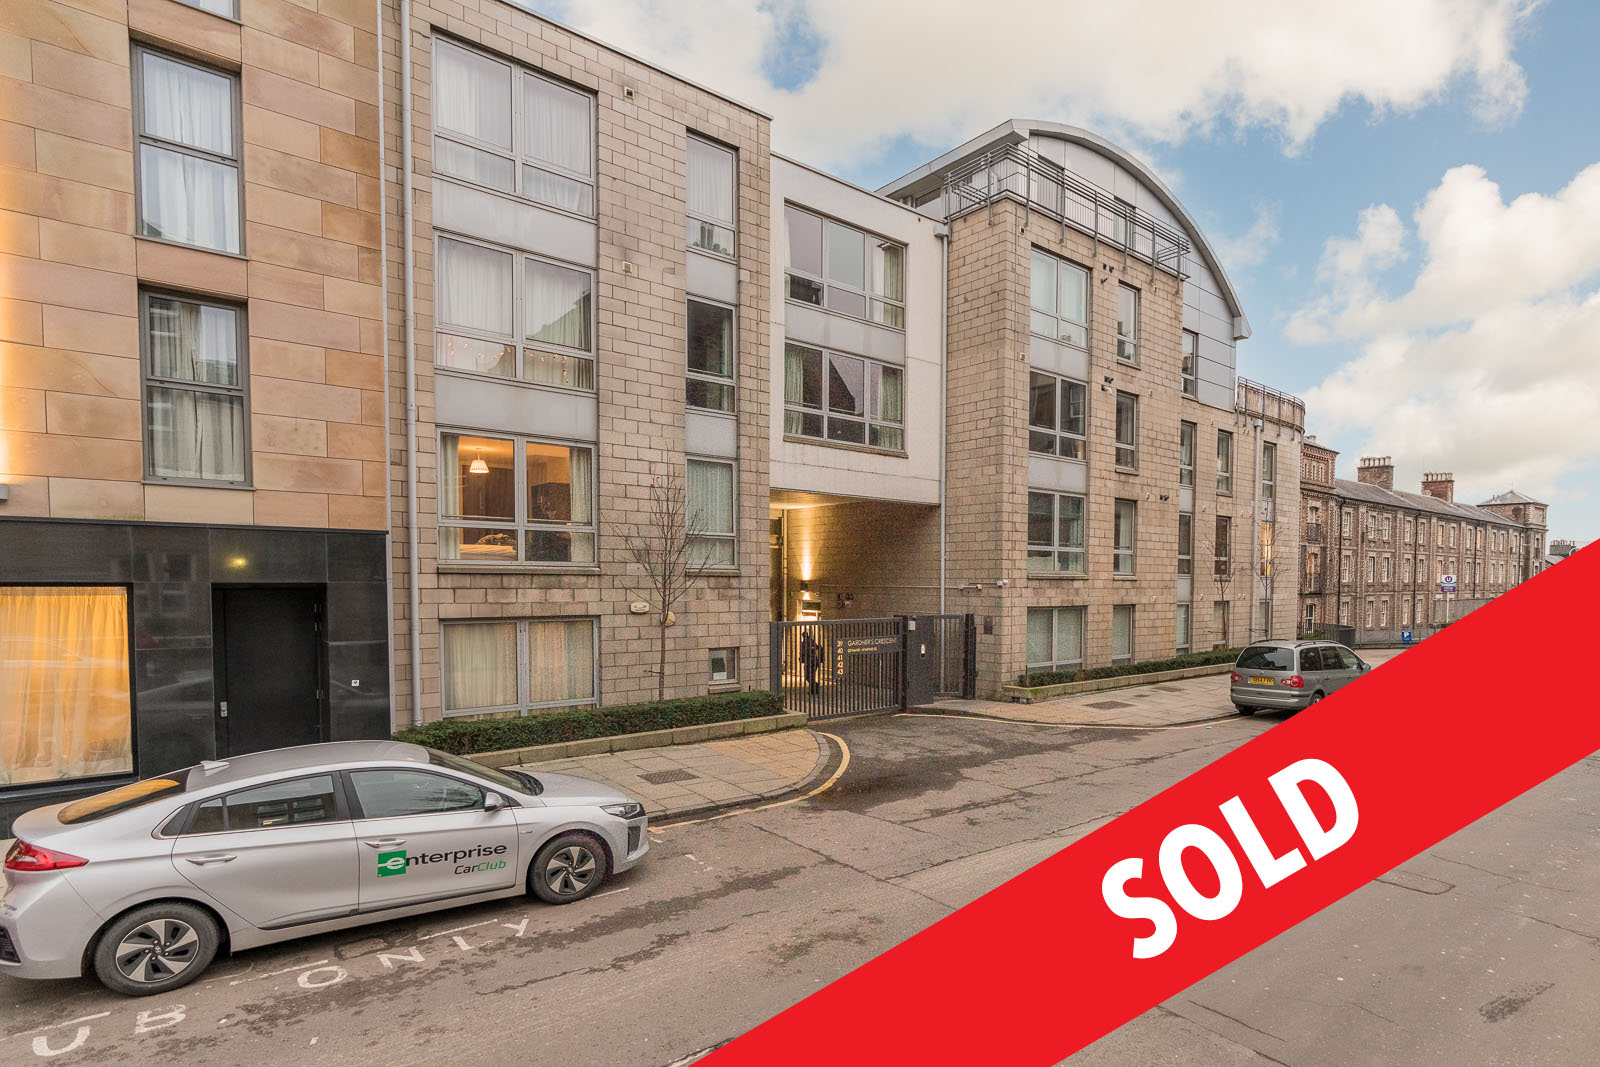 For Sale : 43/8 Gardners Crescent, Fountainbridge, EH3 8DG